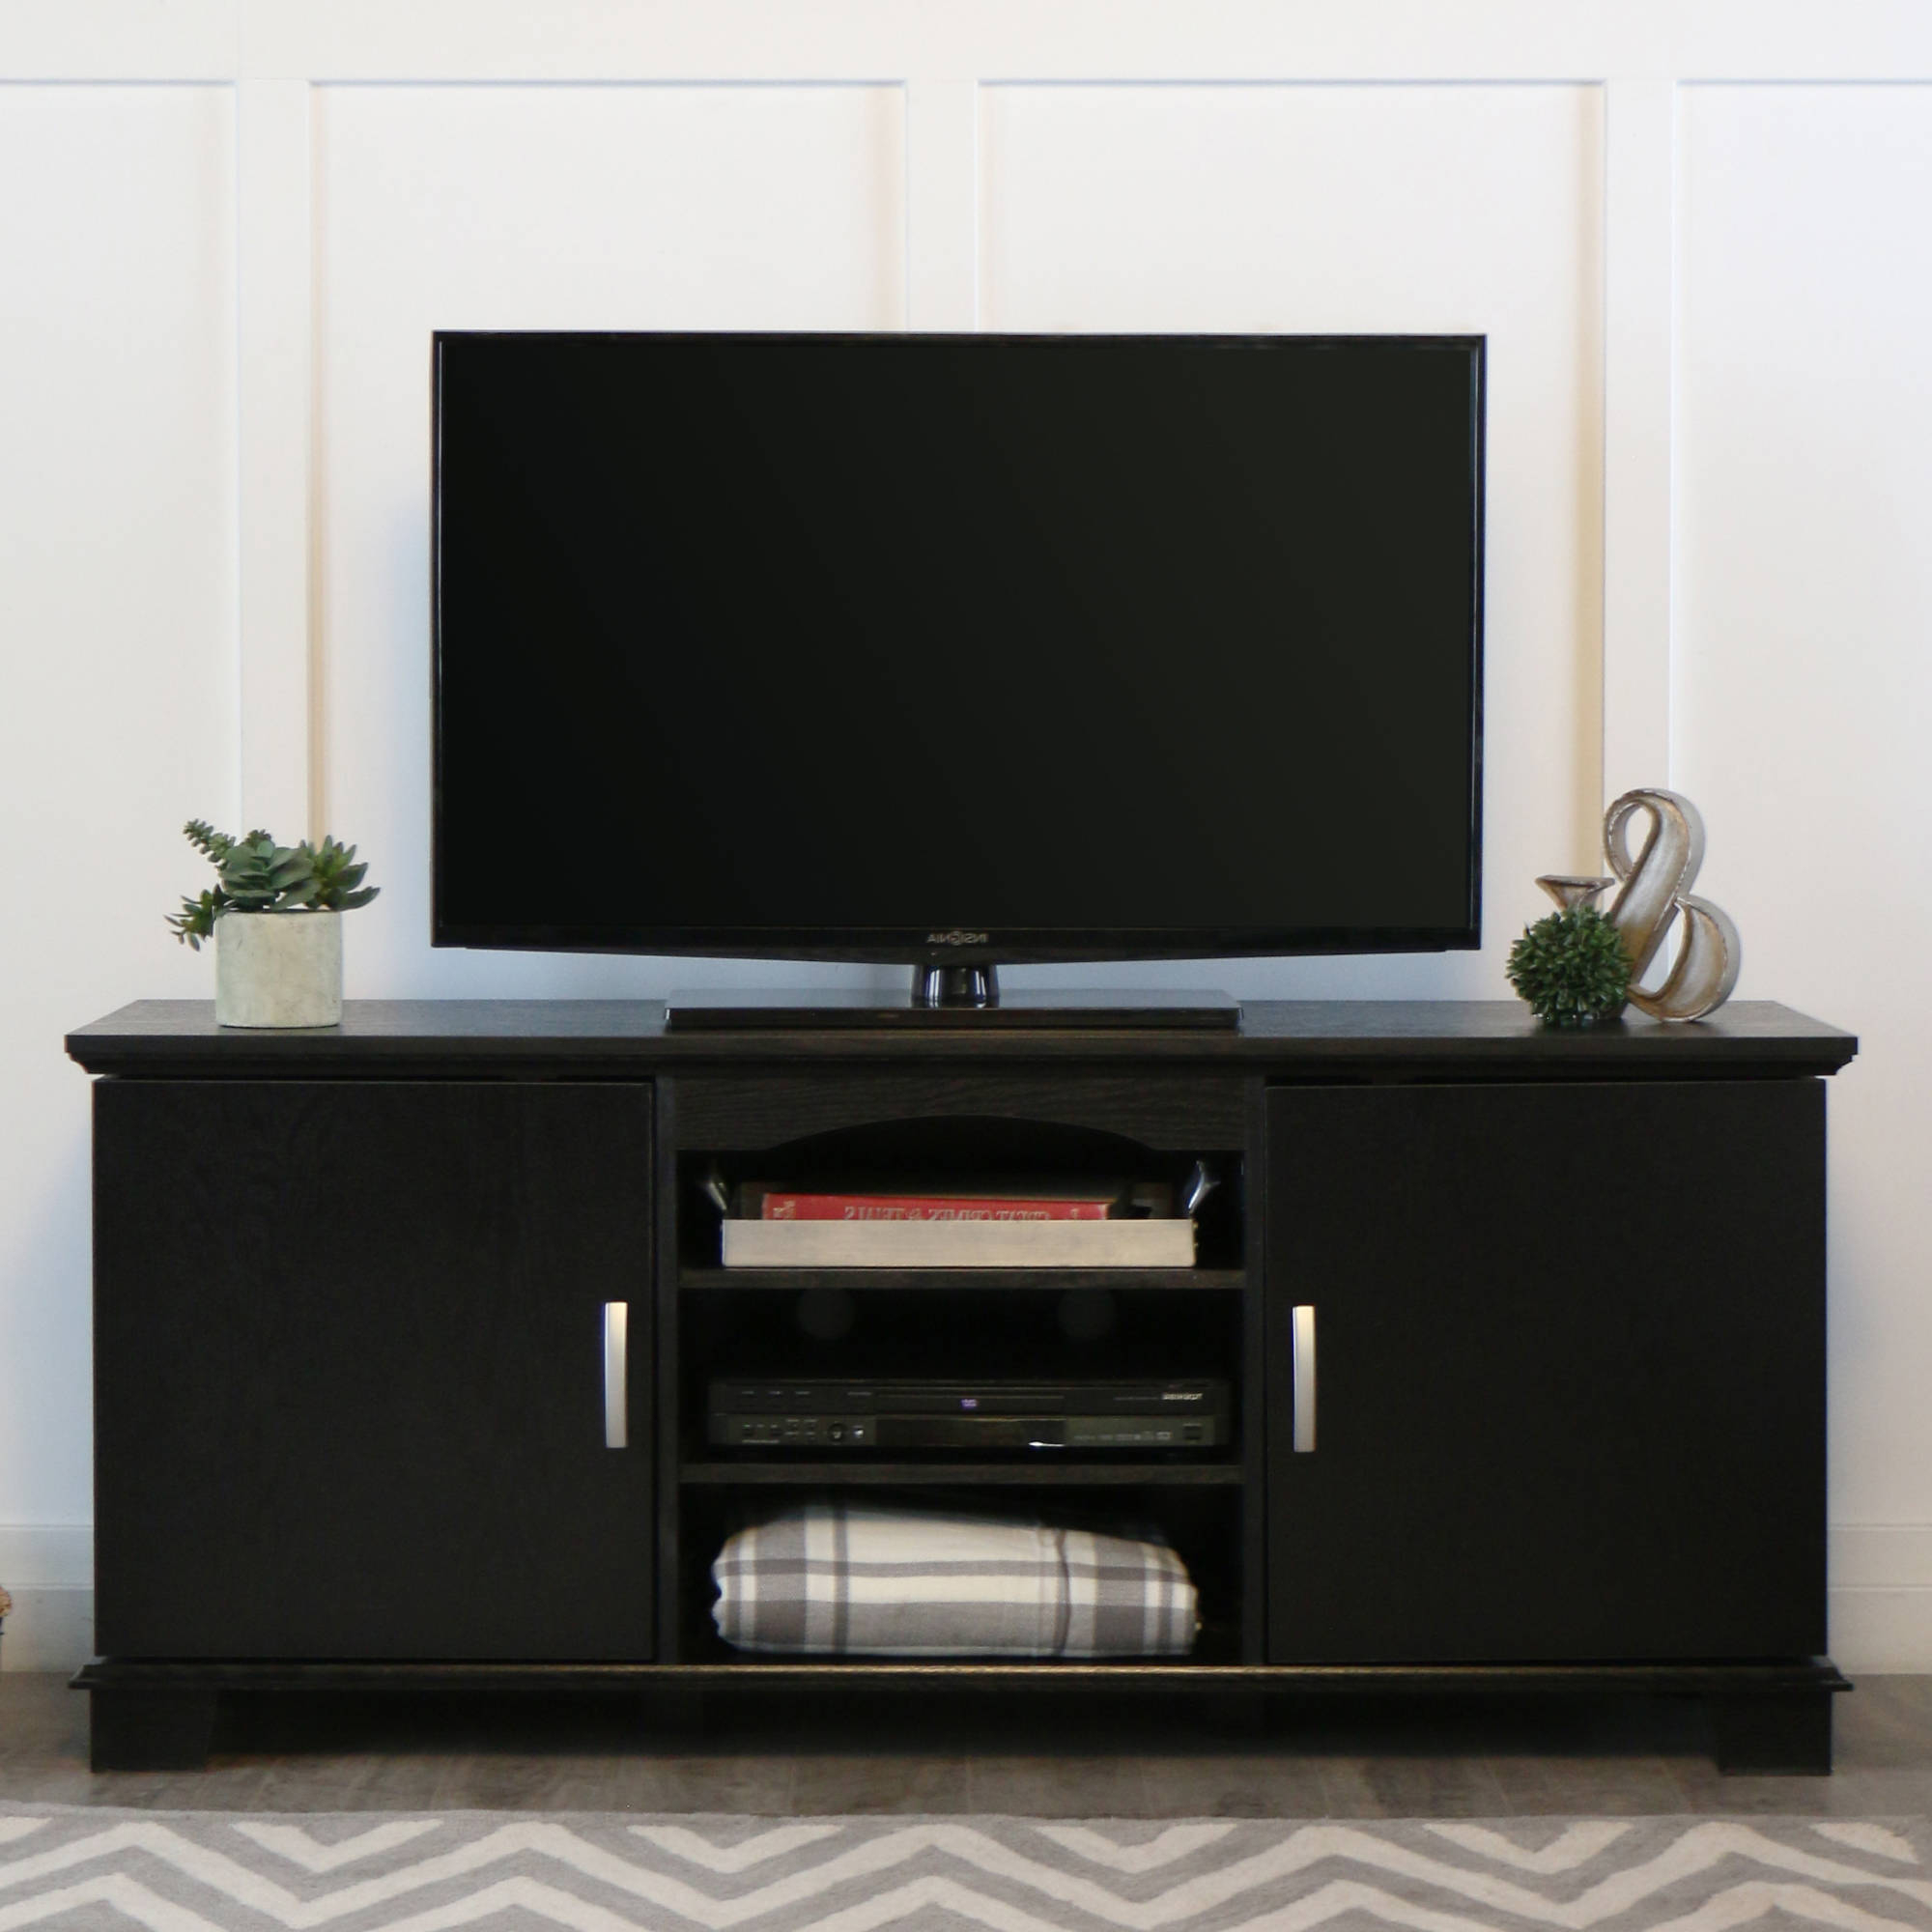 Excellent Espresso Tv Console 29 4845 Jpg V 1525464439 | Gacwar Within Oxford 70 Inch Tv Stands (View 8 of 20)